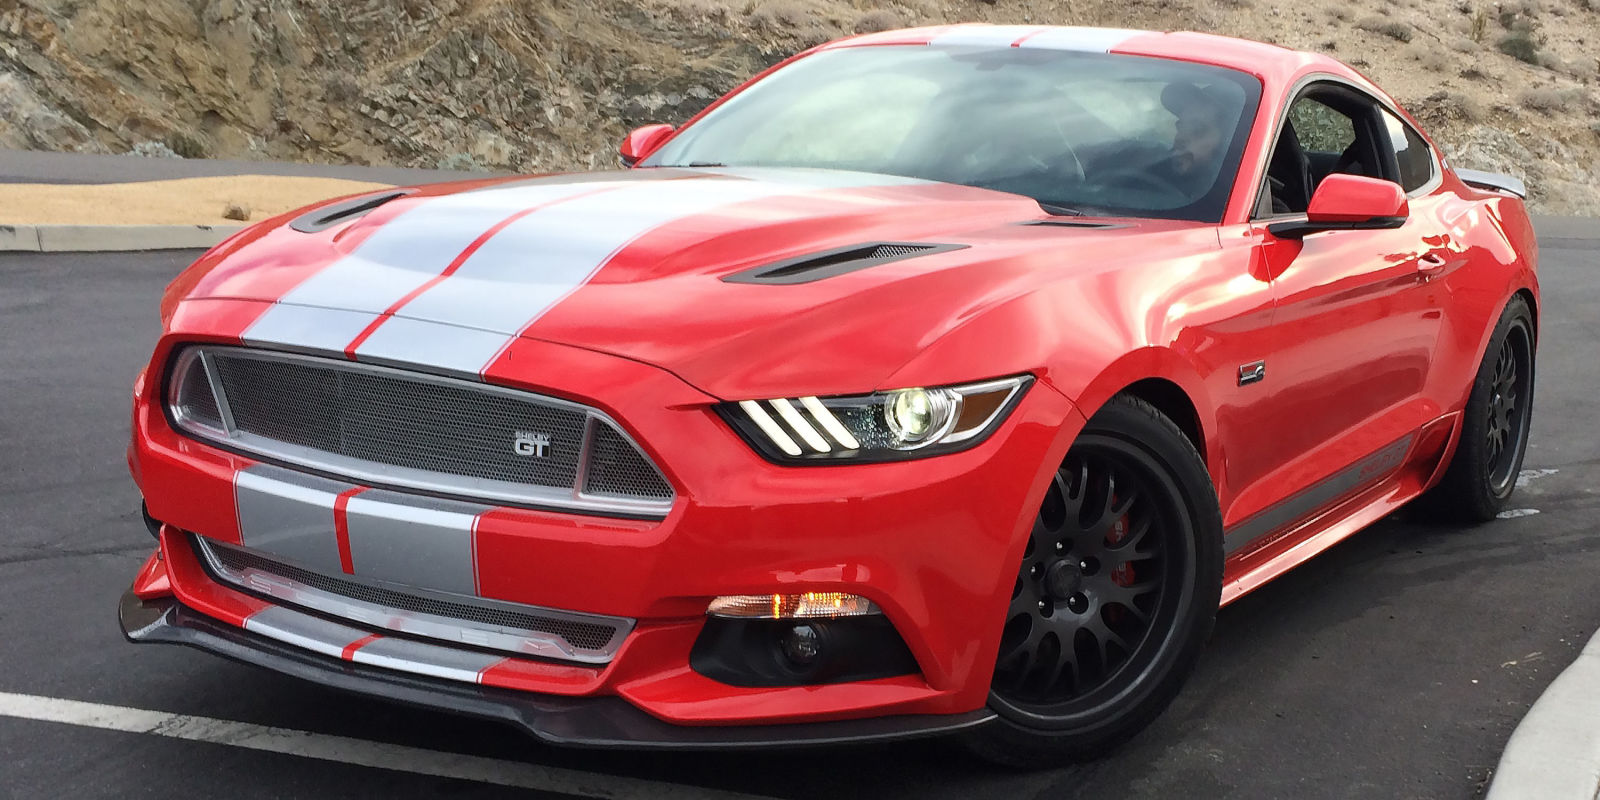 Super Snake Shelby F150 >> EXCLUSIVE: This is the 2015 Shelby GT